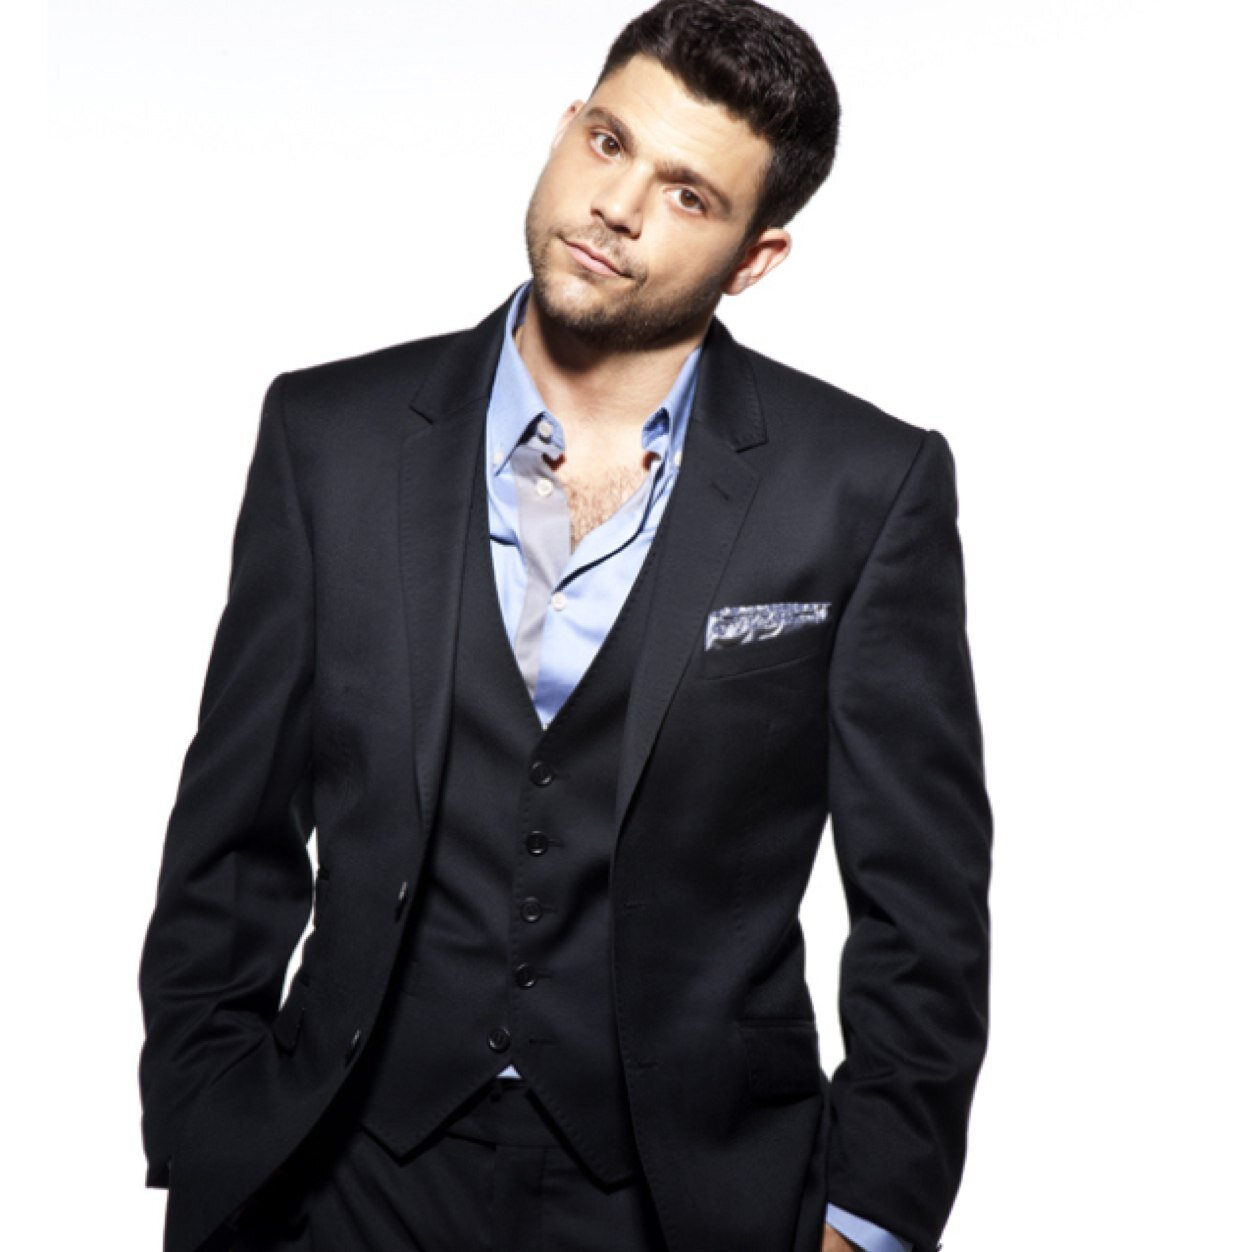 jerry ferrarajerry ferrara imdb, jerry ferrara kevin connolly, jerry ferrara turtle, jerry ferrara ronda rousey, jerry ferrara weight loss, jerry ferrara instagram, jerry ferrara katie cassidy, jerry ferrara entourage, jerry ferrara wikipedia, jerry ferrara, jerry ferrara net worth, jerry ferrara height, jerry ferrara jamie lynn sigler, jerry ferrara twitter, jerry ferrara lone survivor, jerry ferrara lose weight, jerry ferrara bio, jerry ferrara wdw, jerry ferrara facebook, jerry ferrara wife